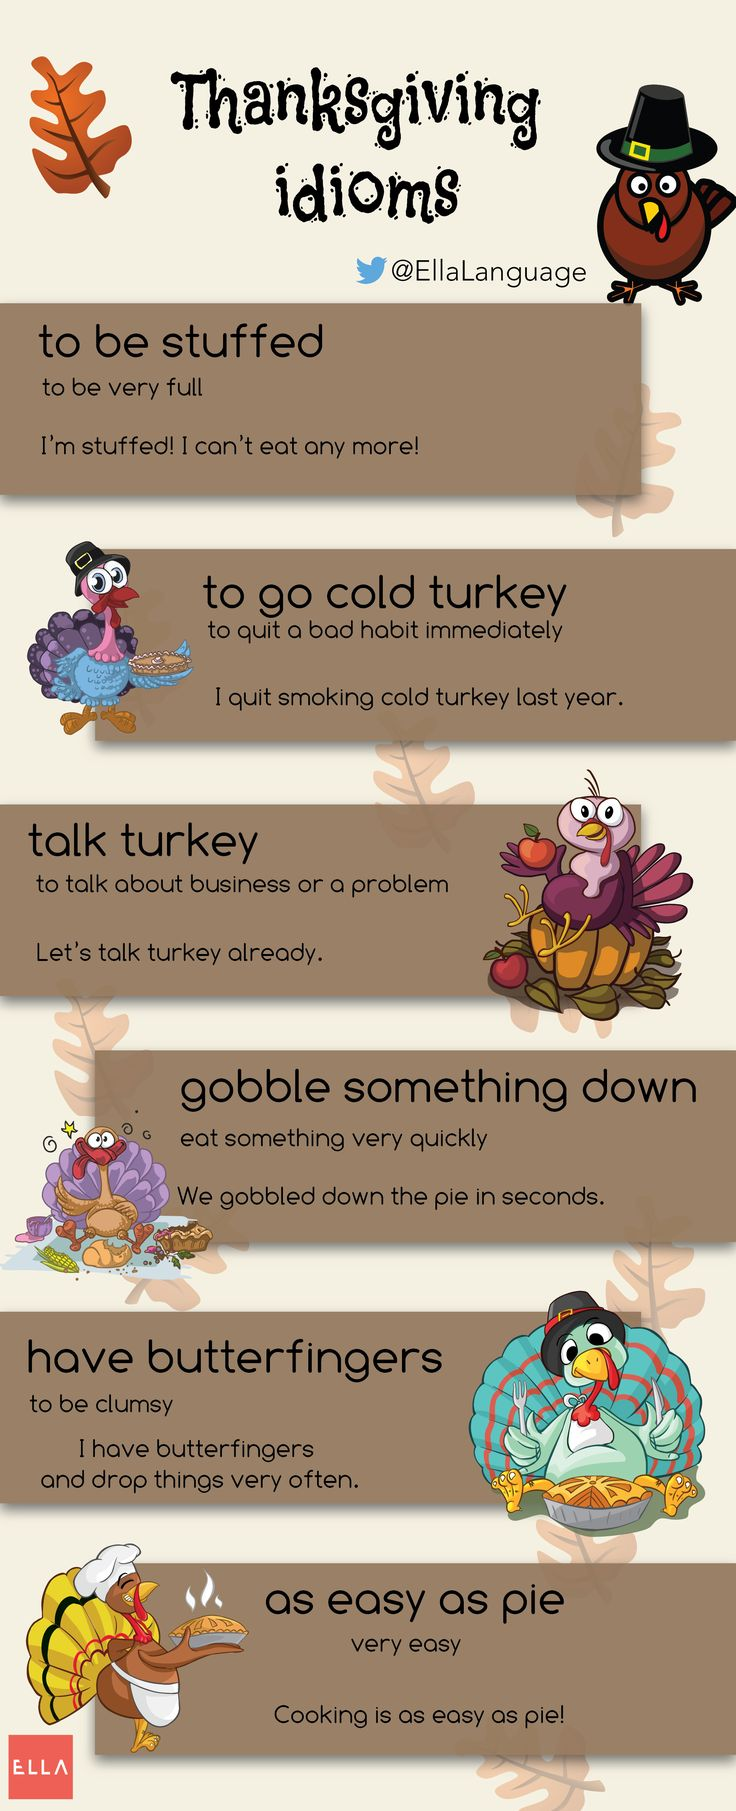 #Thanksgiving #idioms #infographic